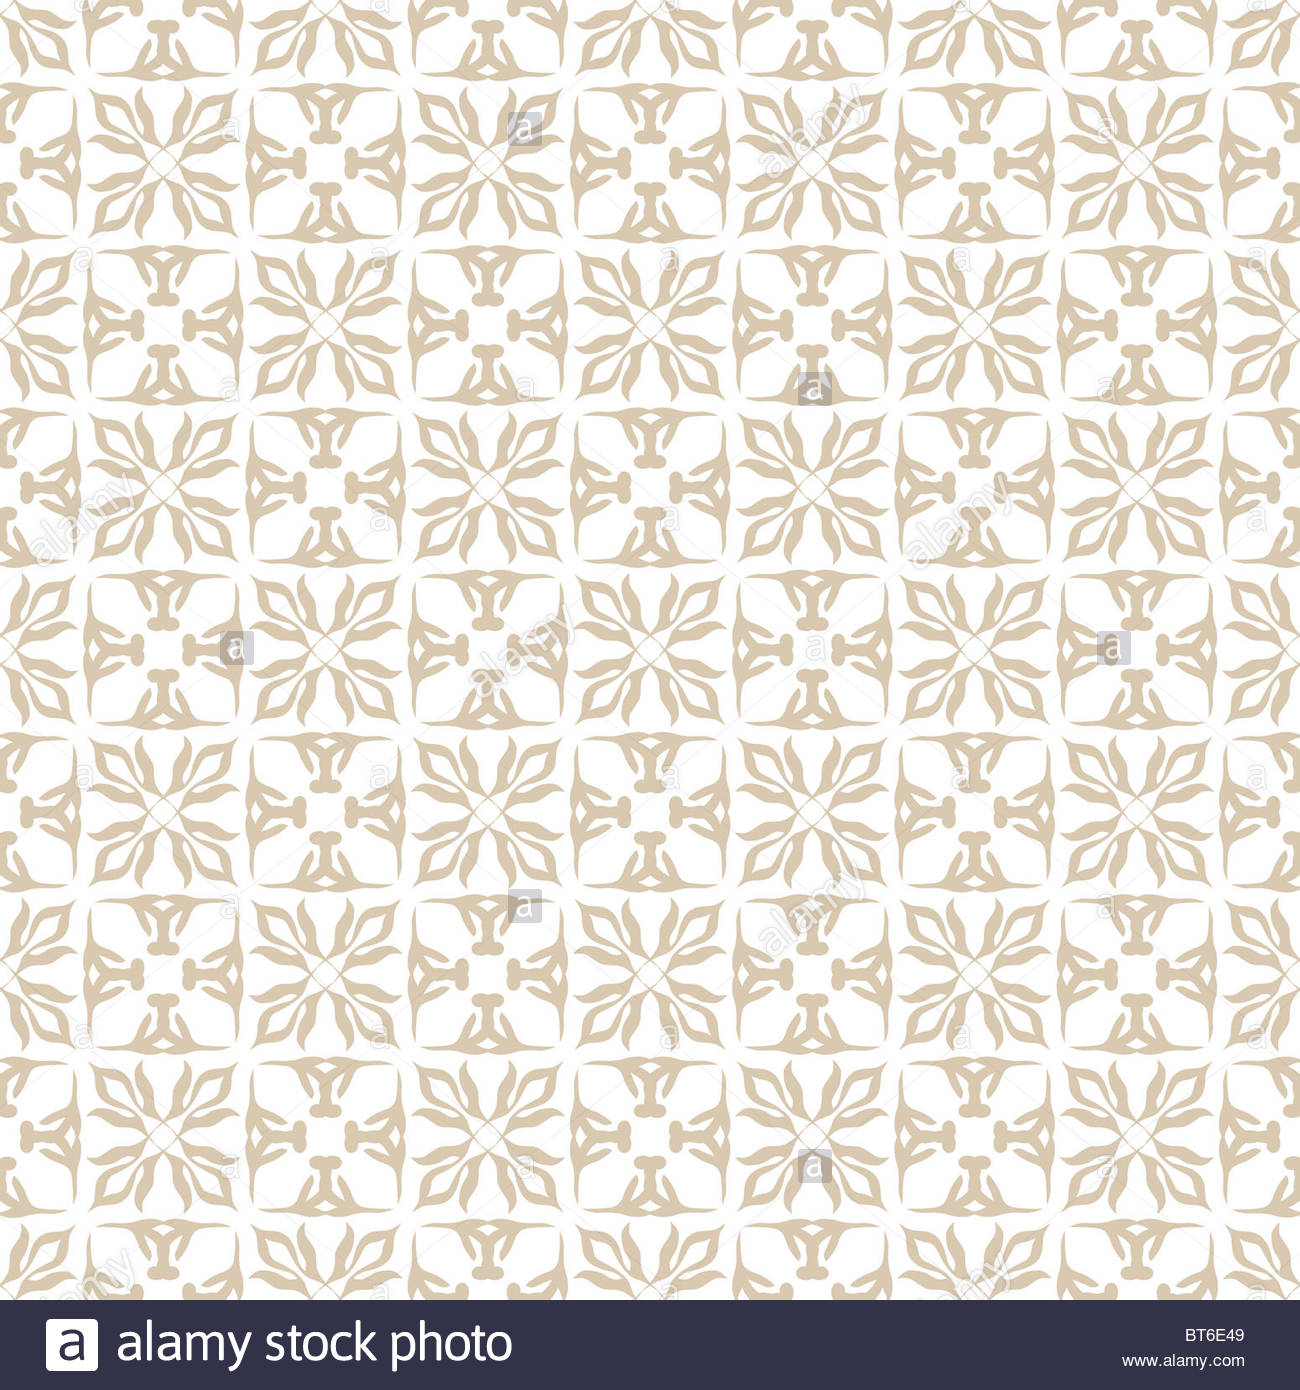 Wallpaper Design Pattern